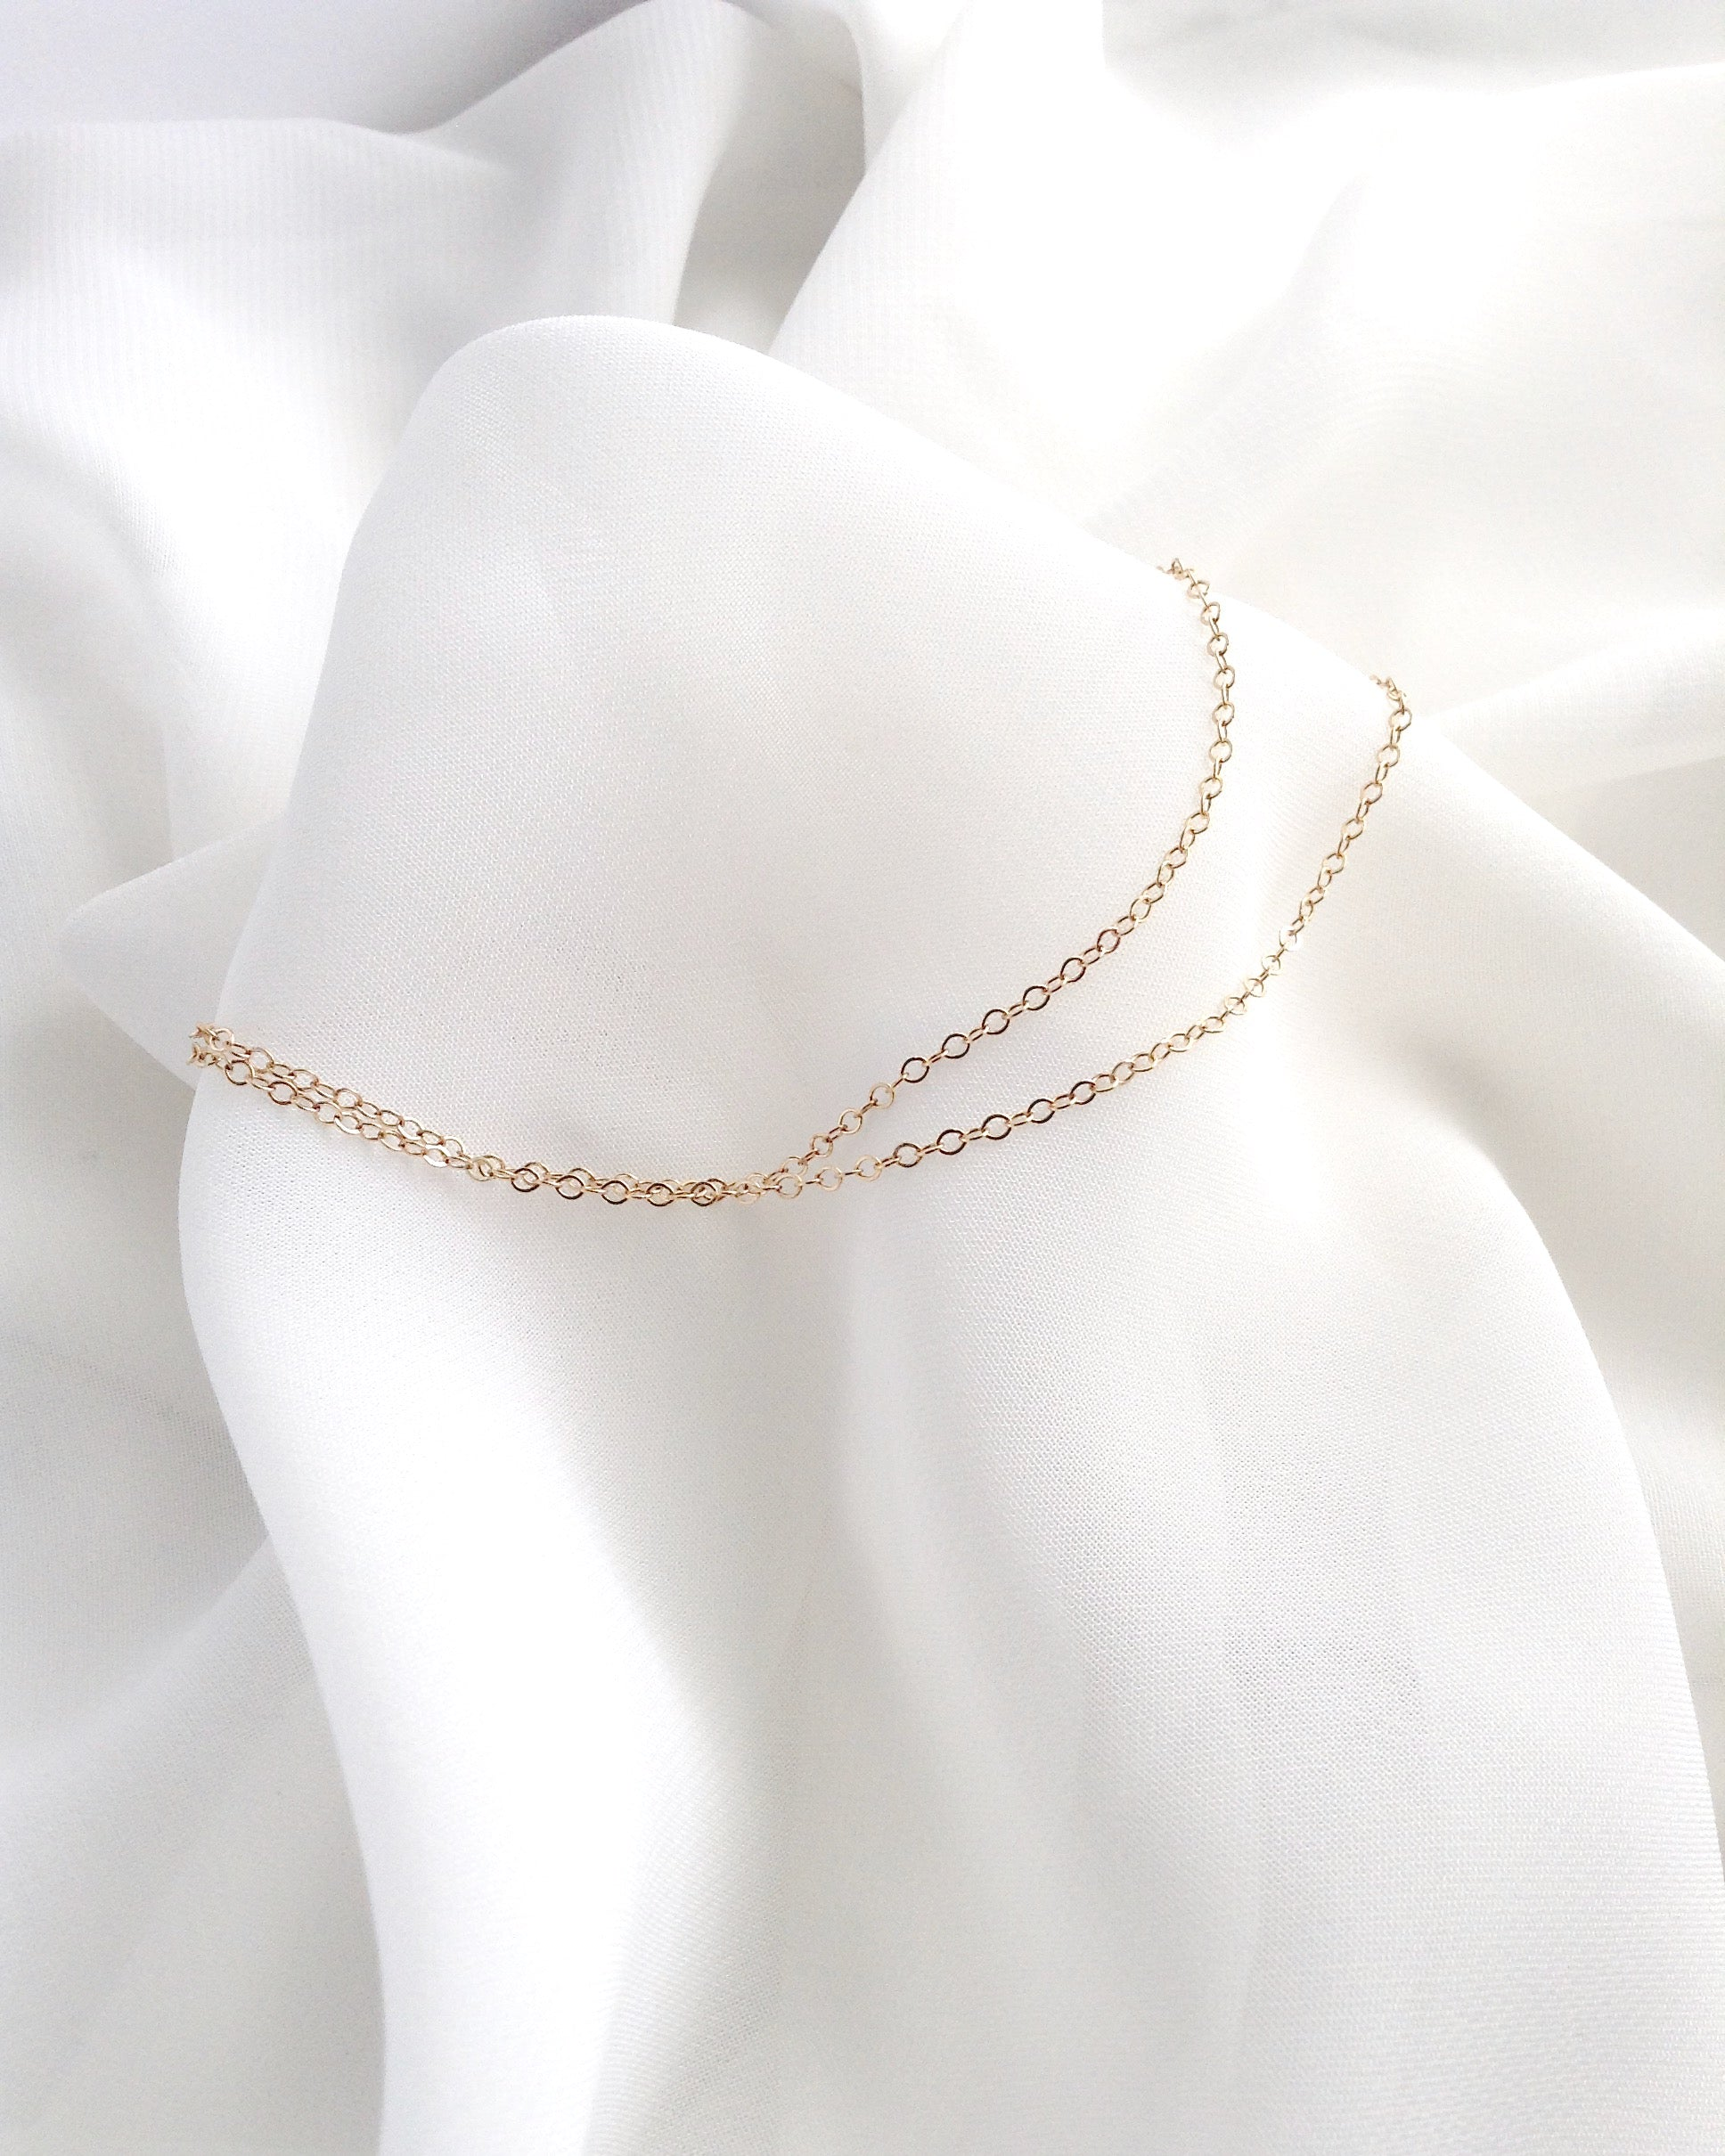 Delicate Anklet | Double Chain Anklet | Dainty Gold Anklet | IB Jewelry